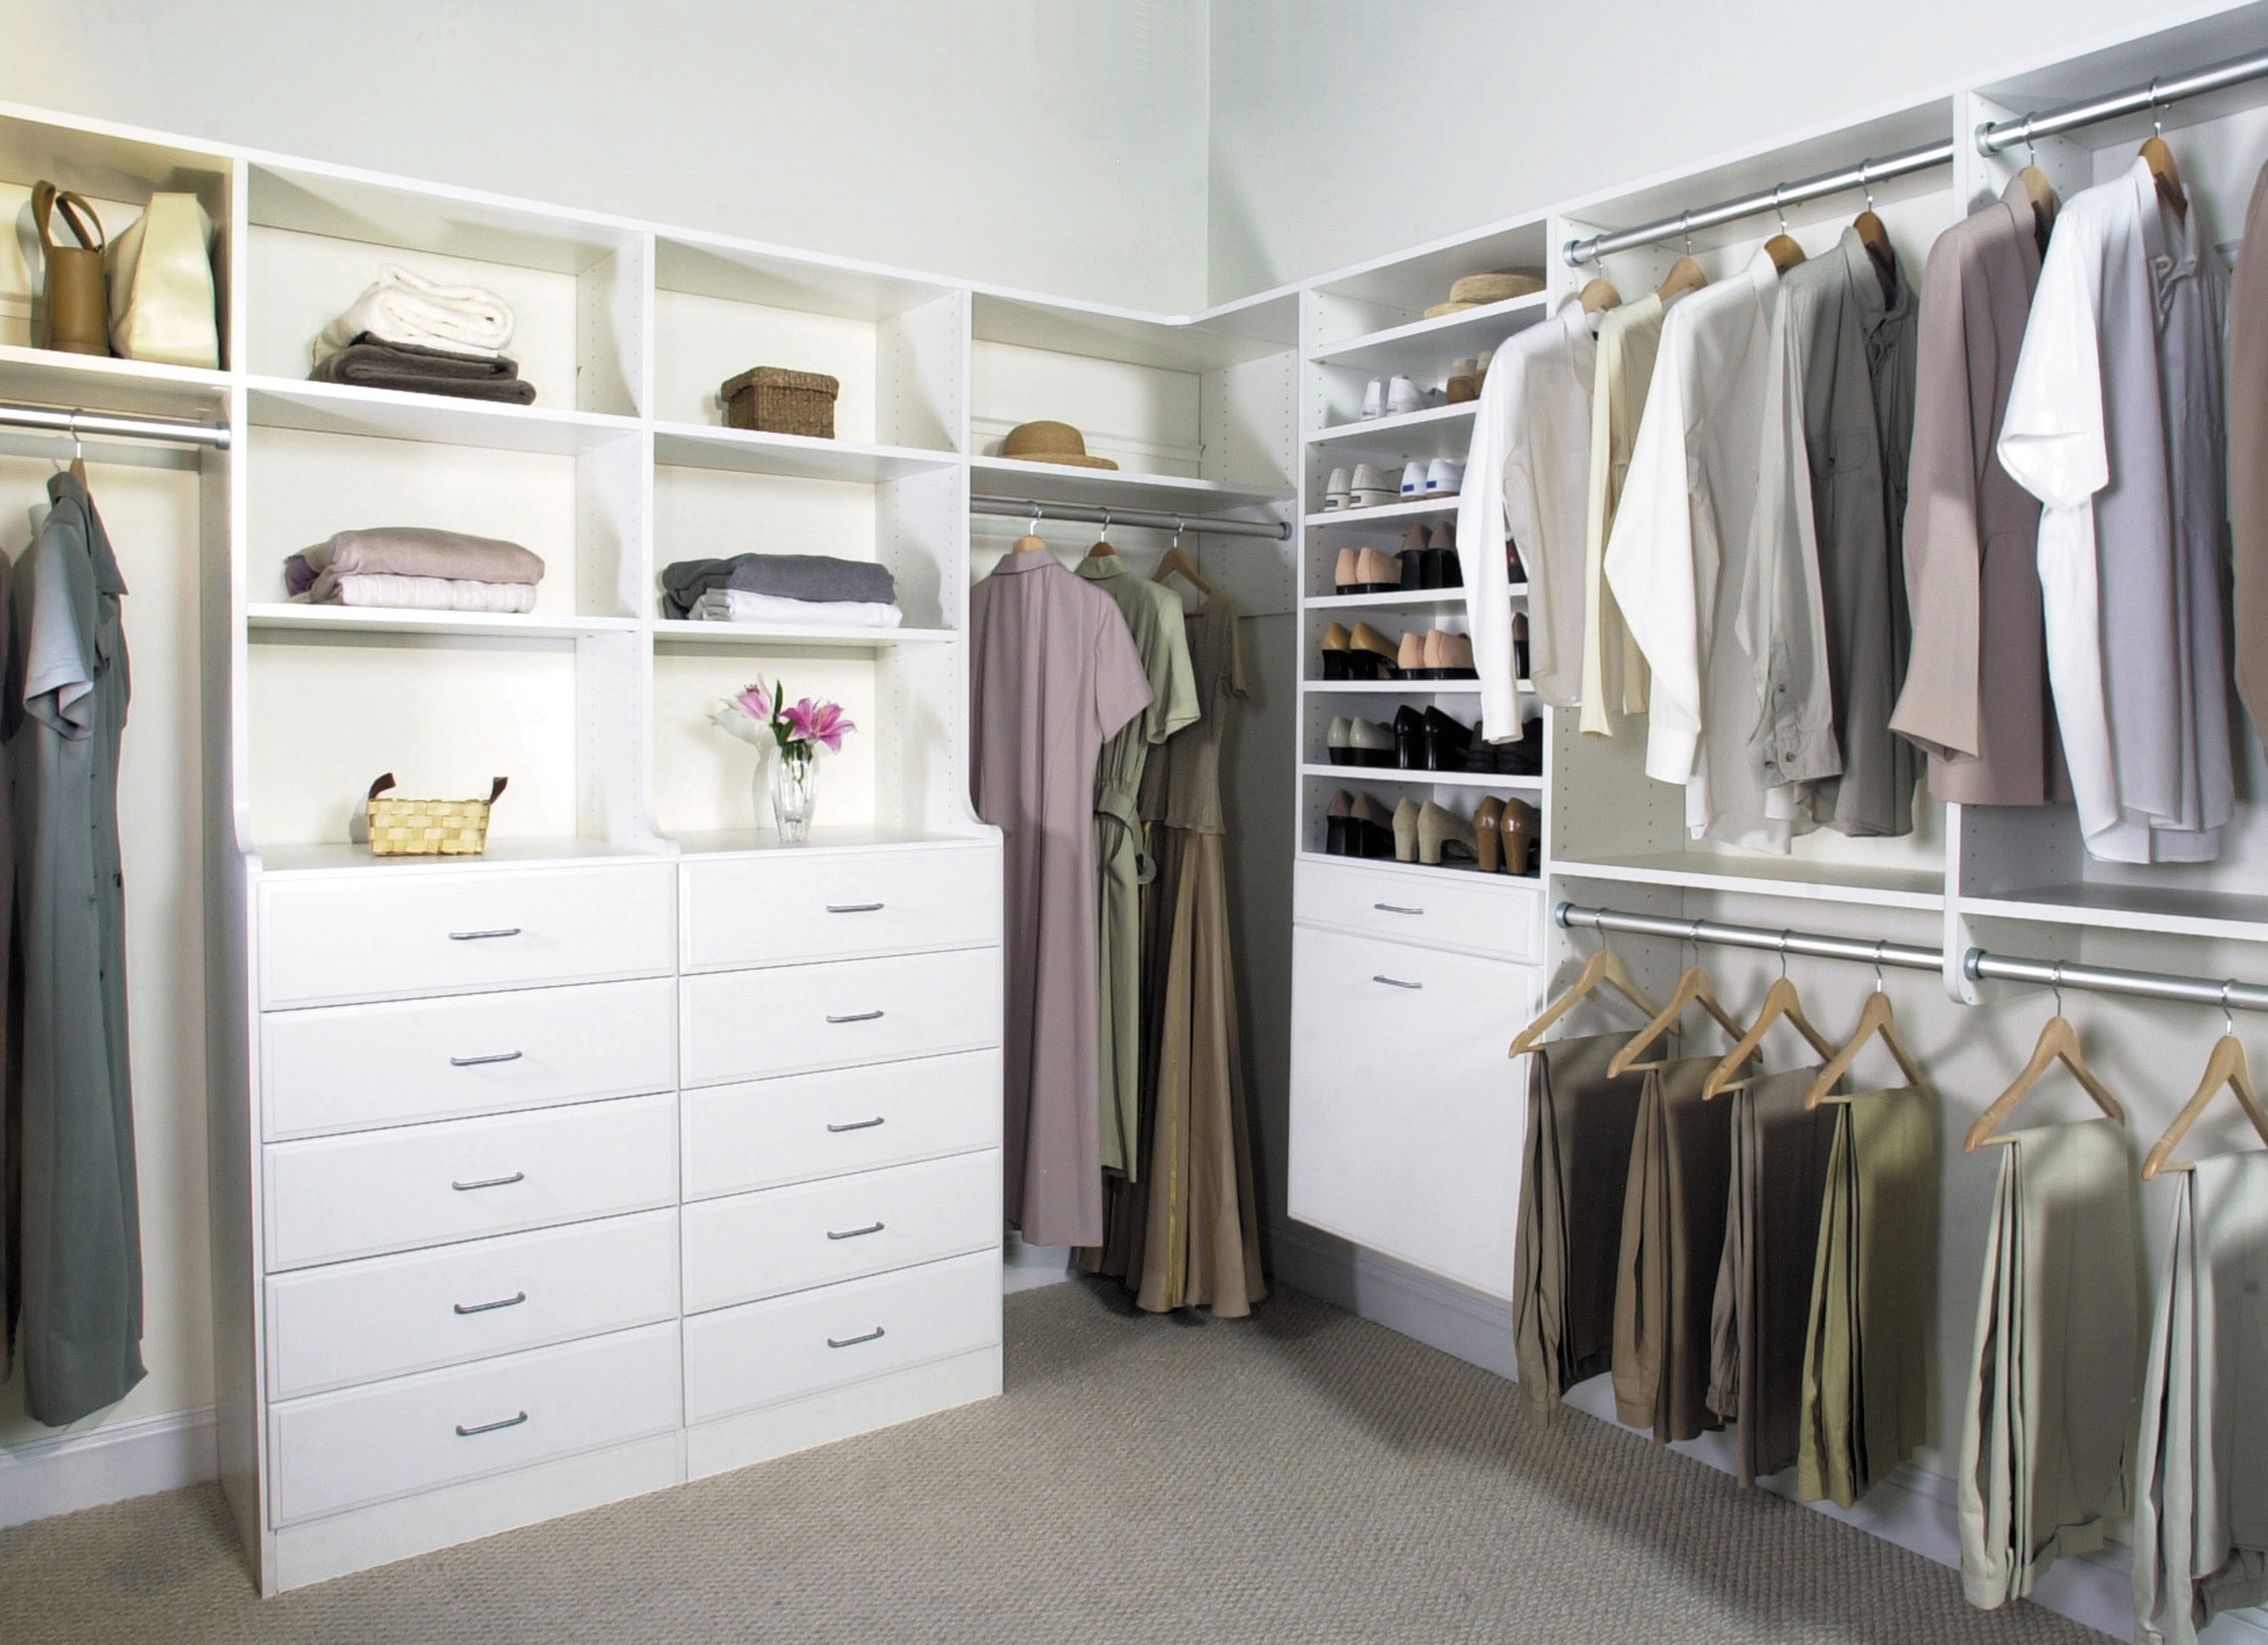 Walk In Closet With Double Clothes Hangers, Hutch And Shoe Shelves In A  White Finish.